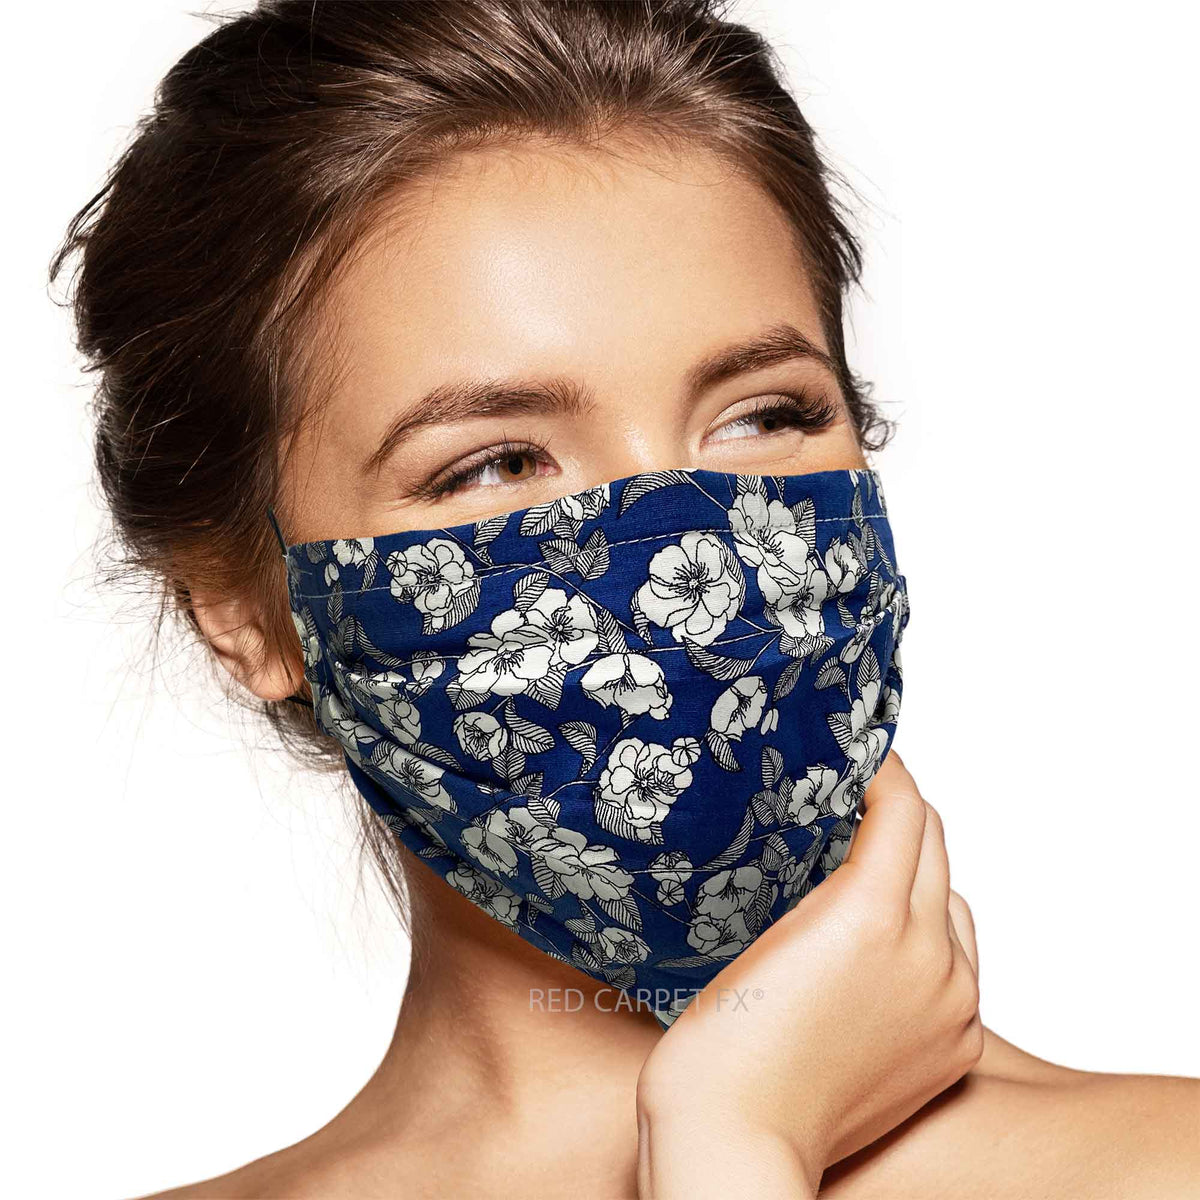 Pebbles Handmade Pleated Cotton Face Mask - Sketched Flowers on Blue